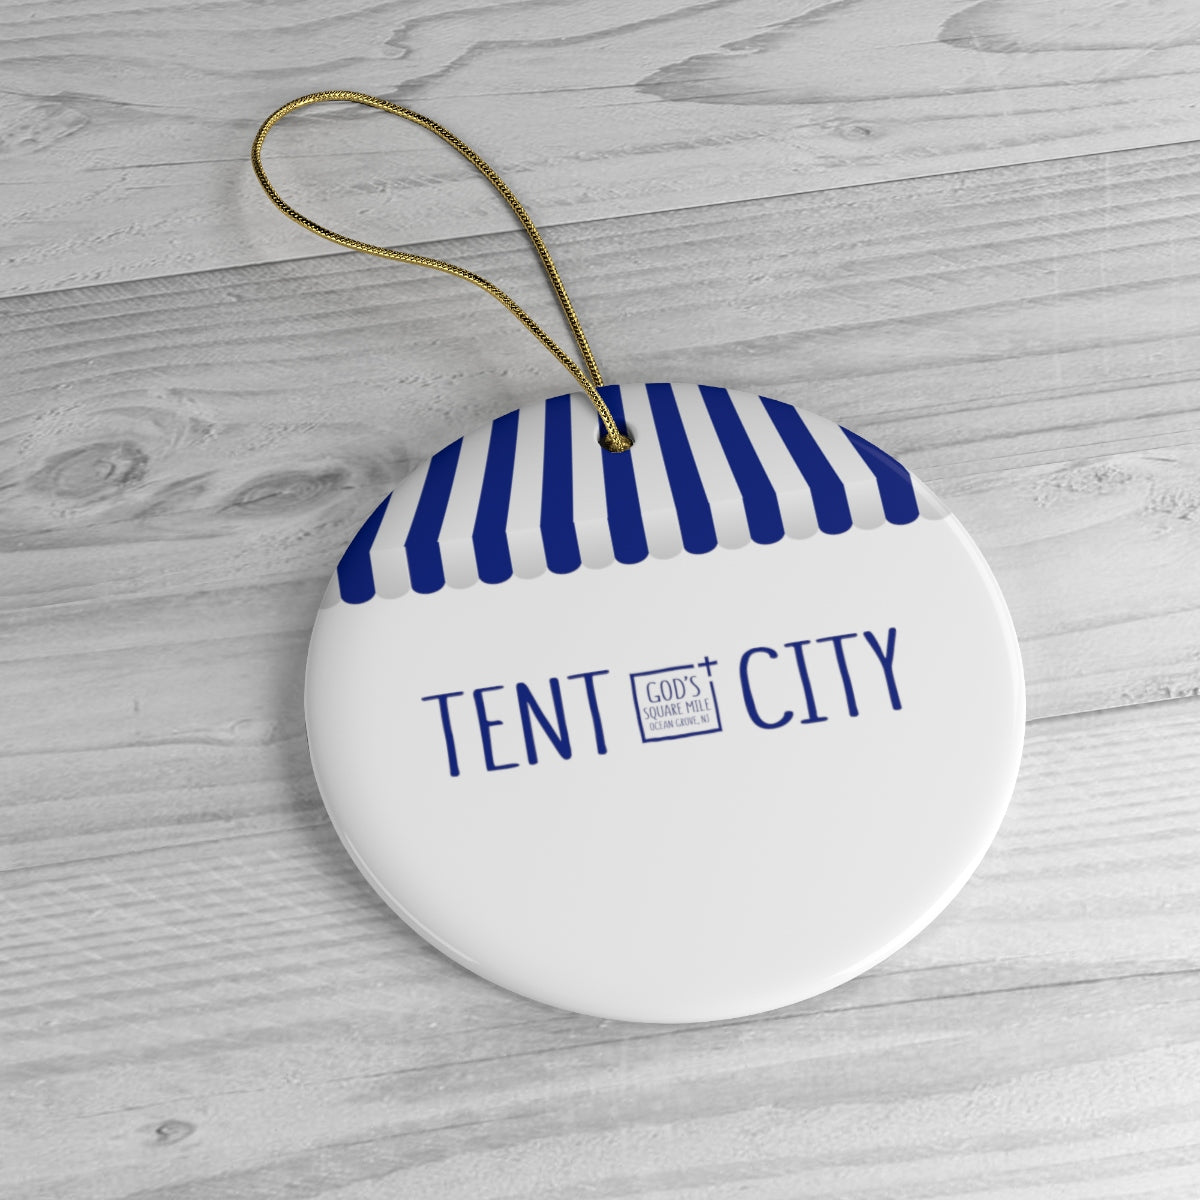 Tent City Ceramic Christmas Ornament: Blue and White Stripe